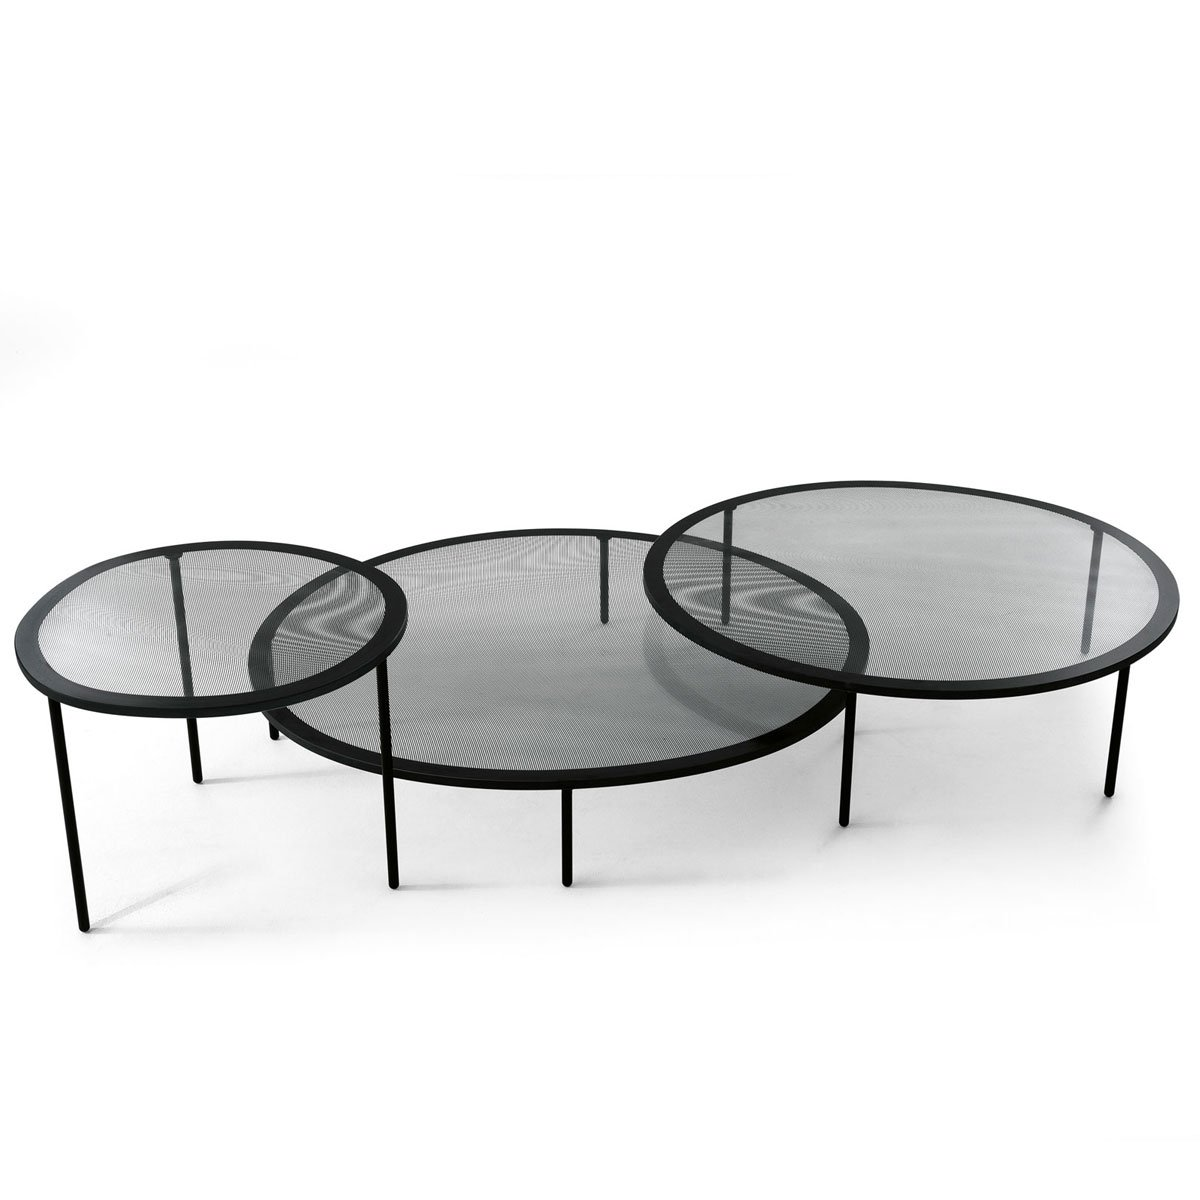 Glass And Steel Coffee Tables Taffy Glass And Metal Coffee Table By Gallotti And Radice